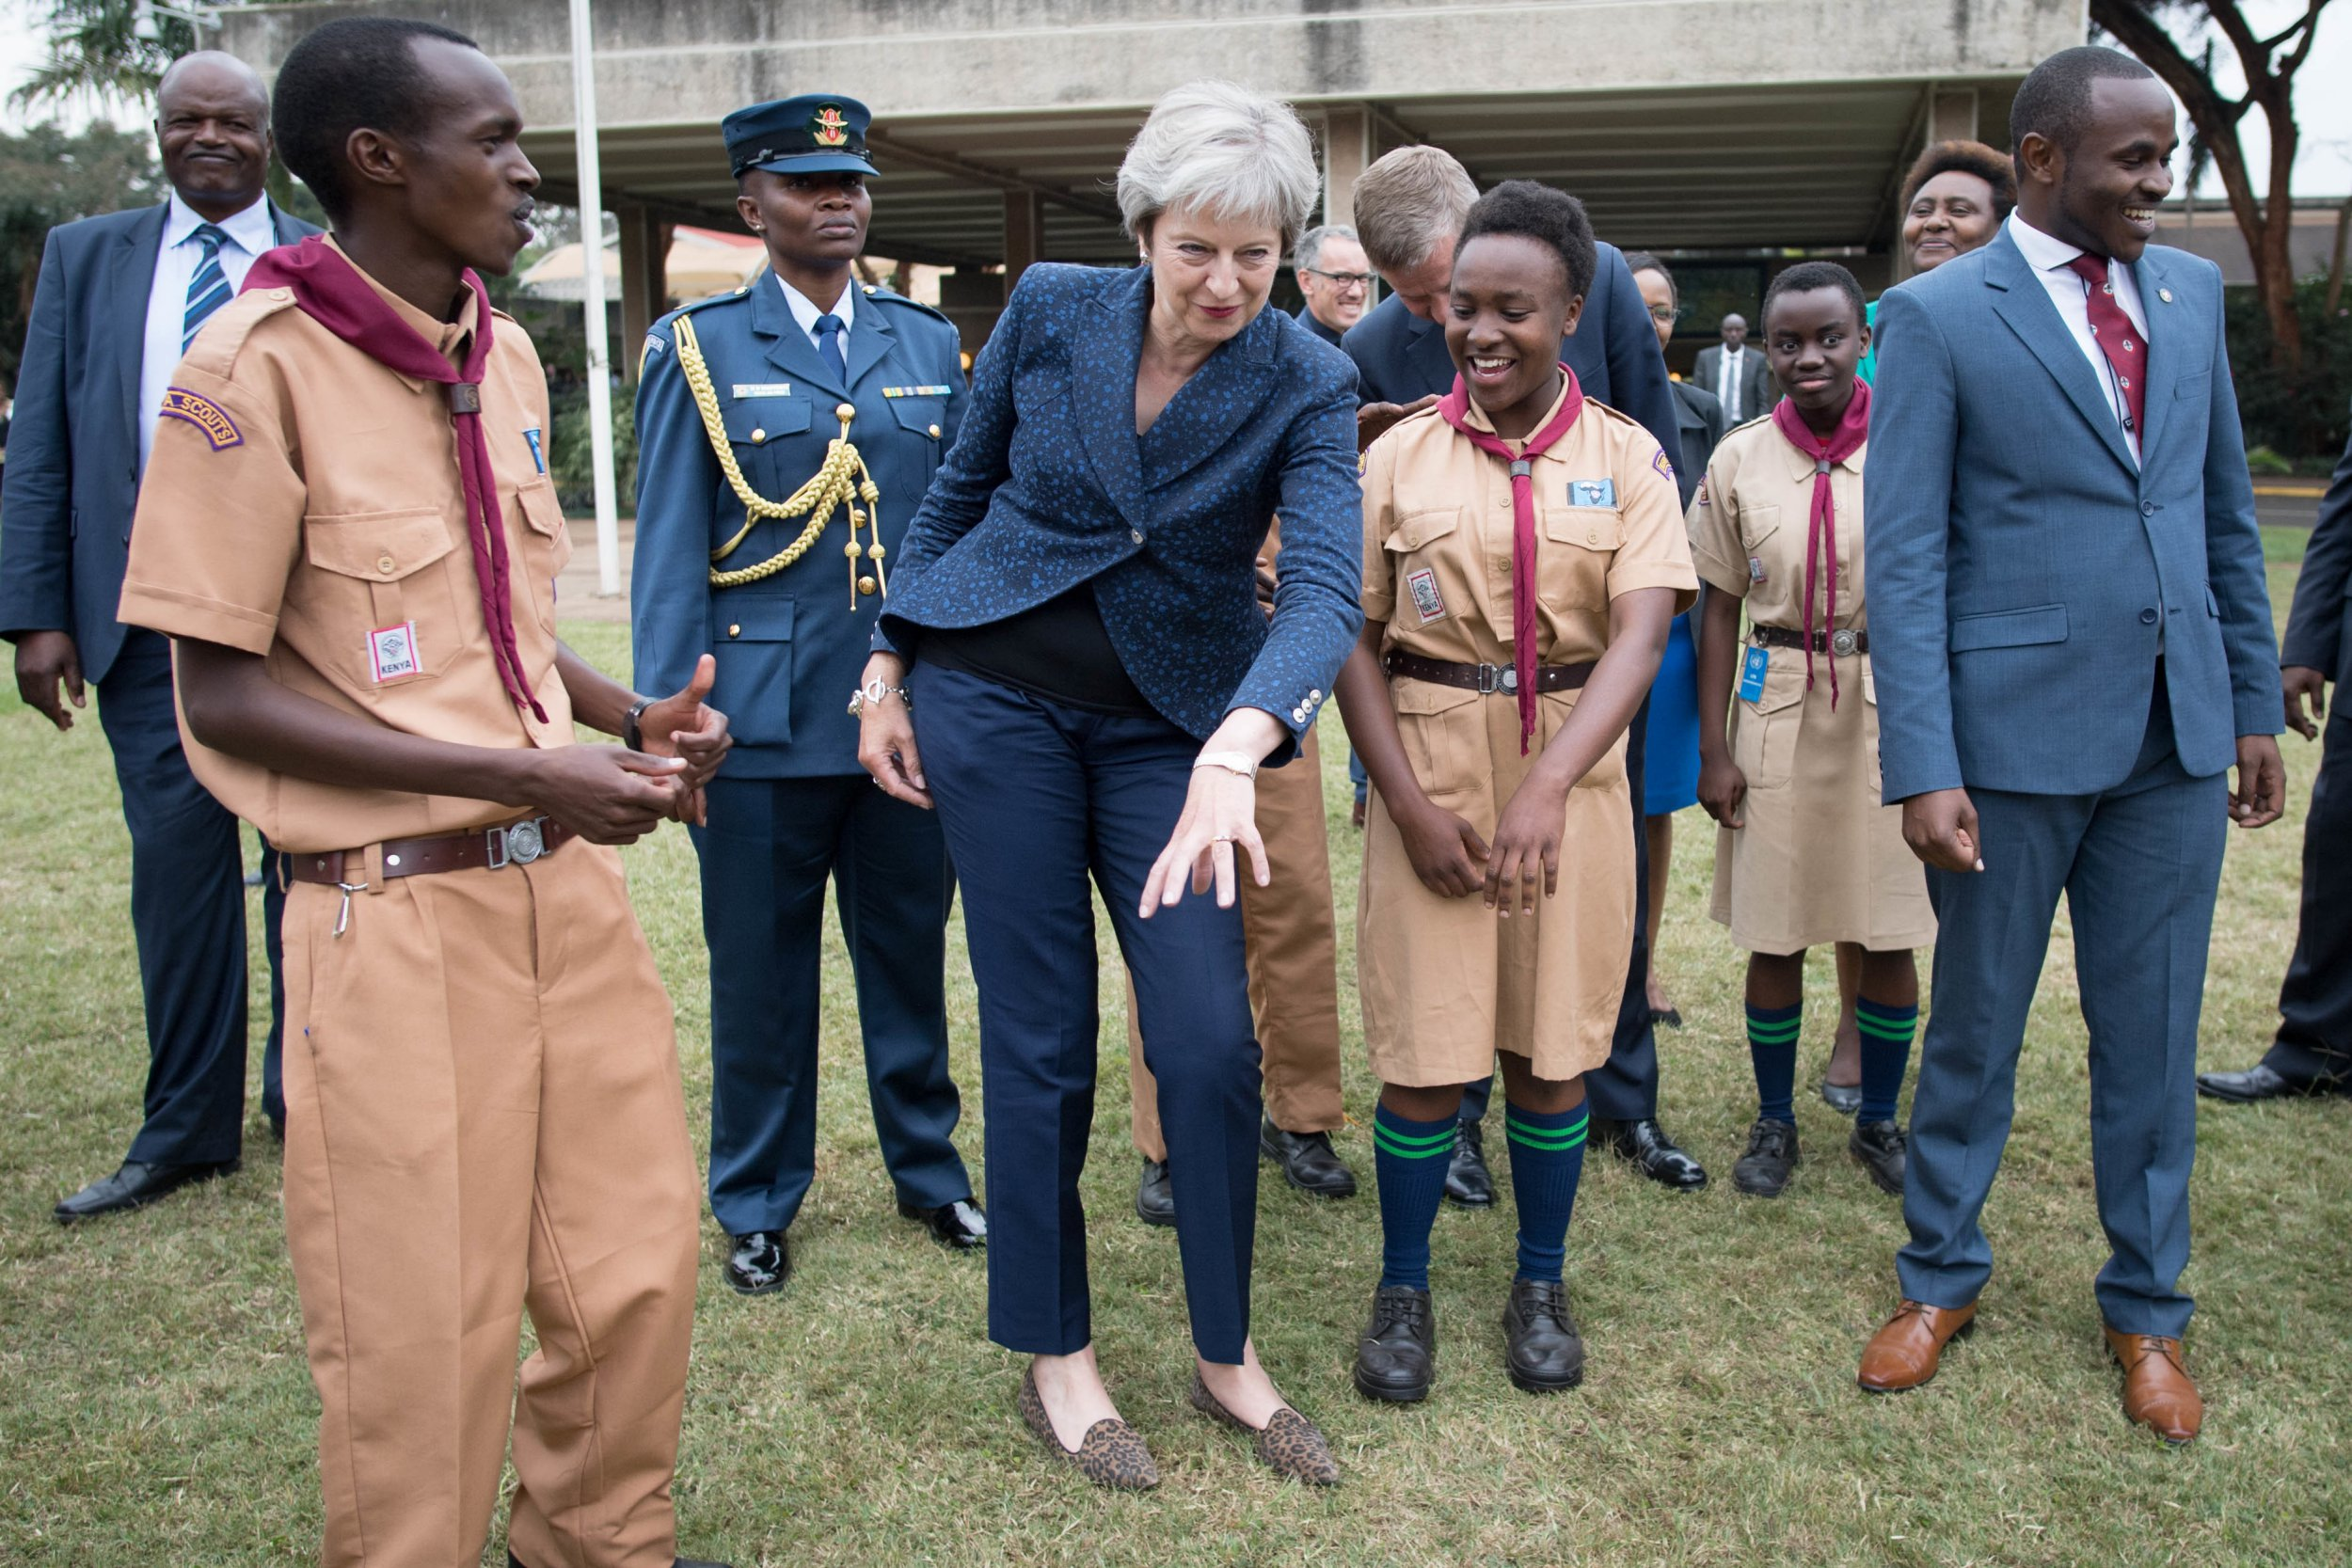 Prime Minister Theresa May in breaks into dance whilst meeting with scouts at the United Nations offices in Nairobi on the third day of her visit to Africa. PRESS ASSOCIATION Photo. Picture date: Thursday August 30, 2018. See PA story POLITICS Africa. Photo credit should read: Stefan Rousseau/PA Wire